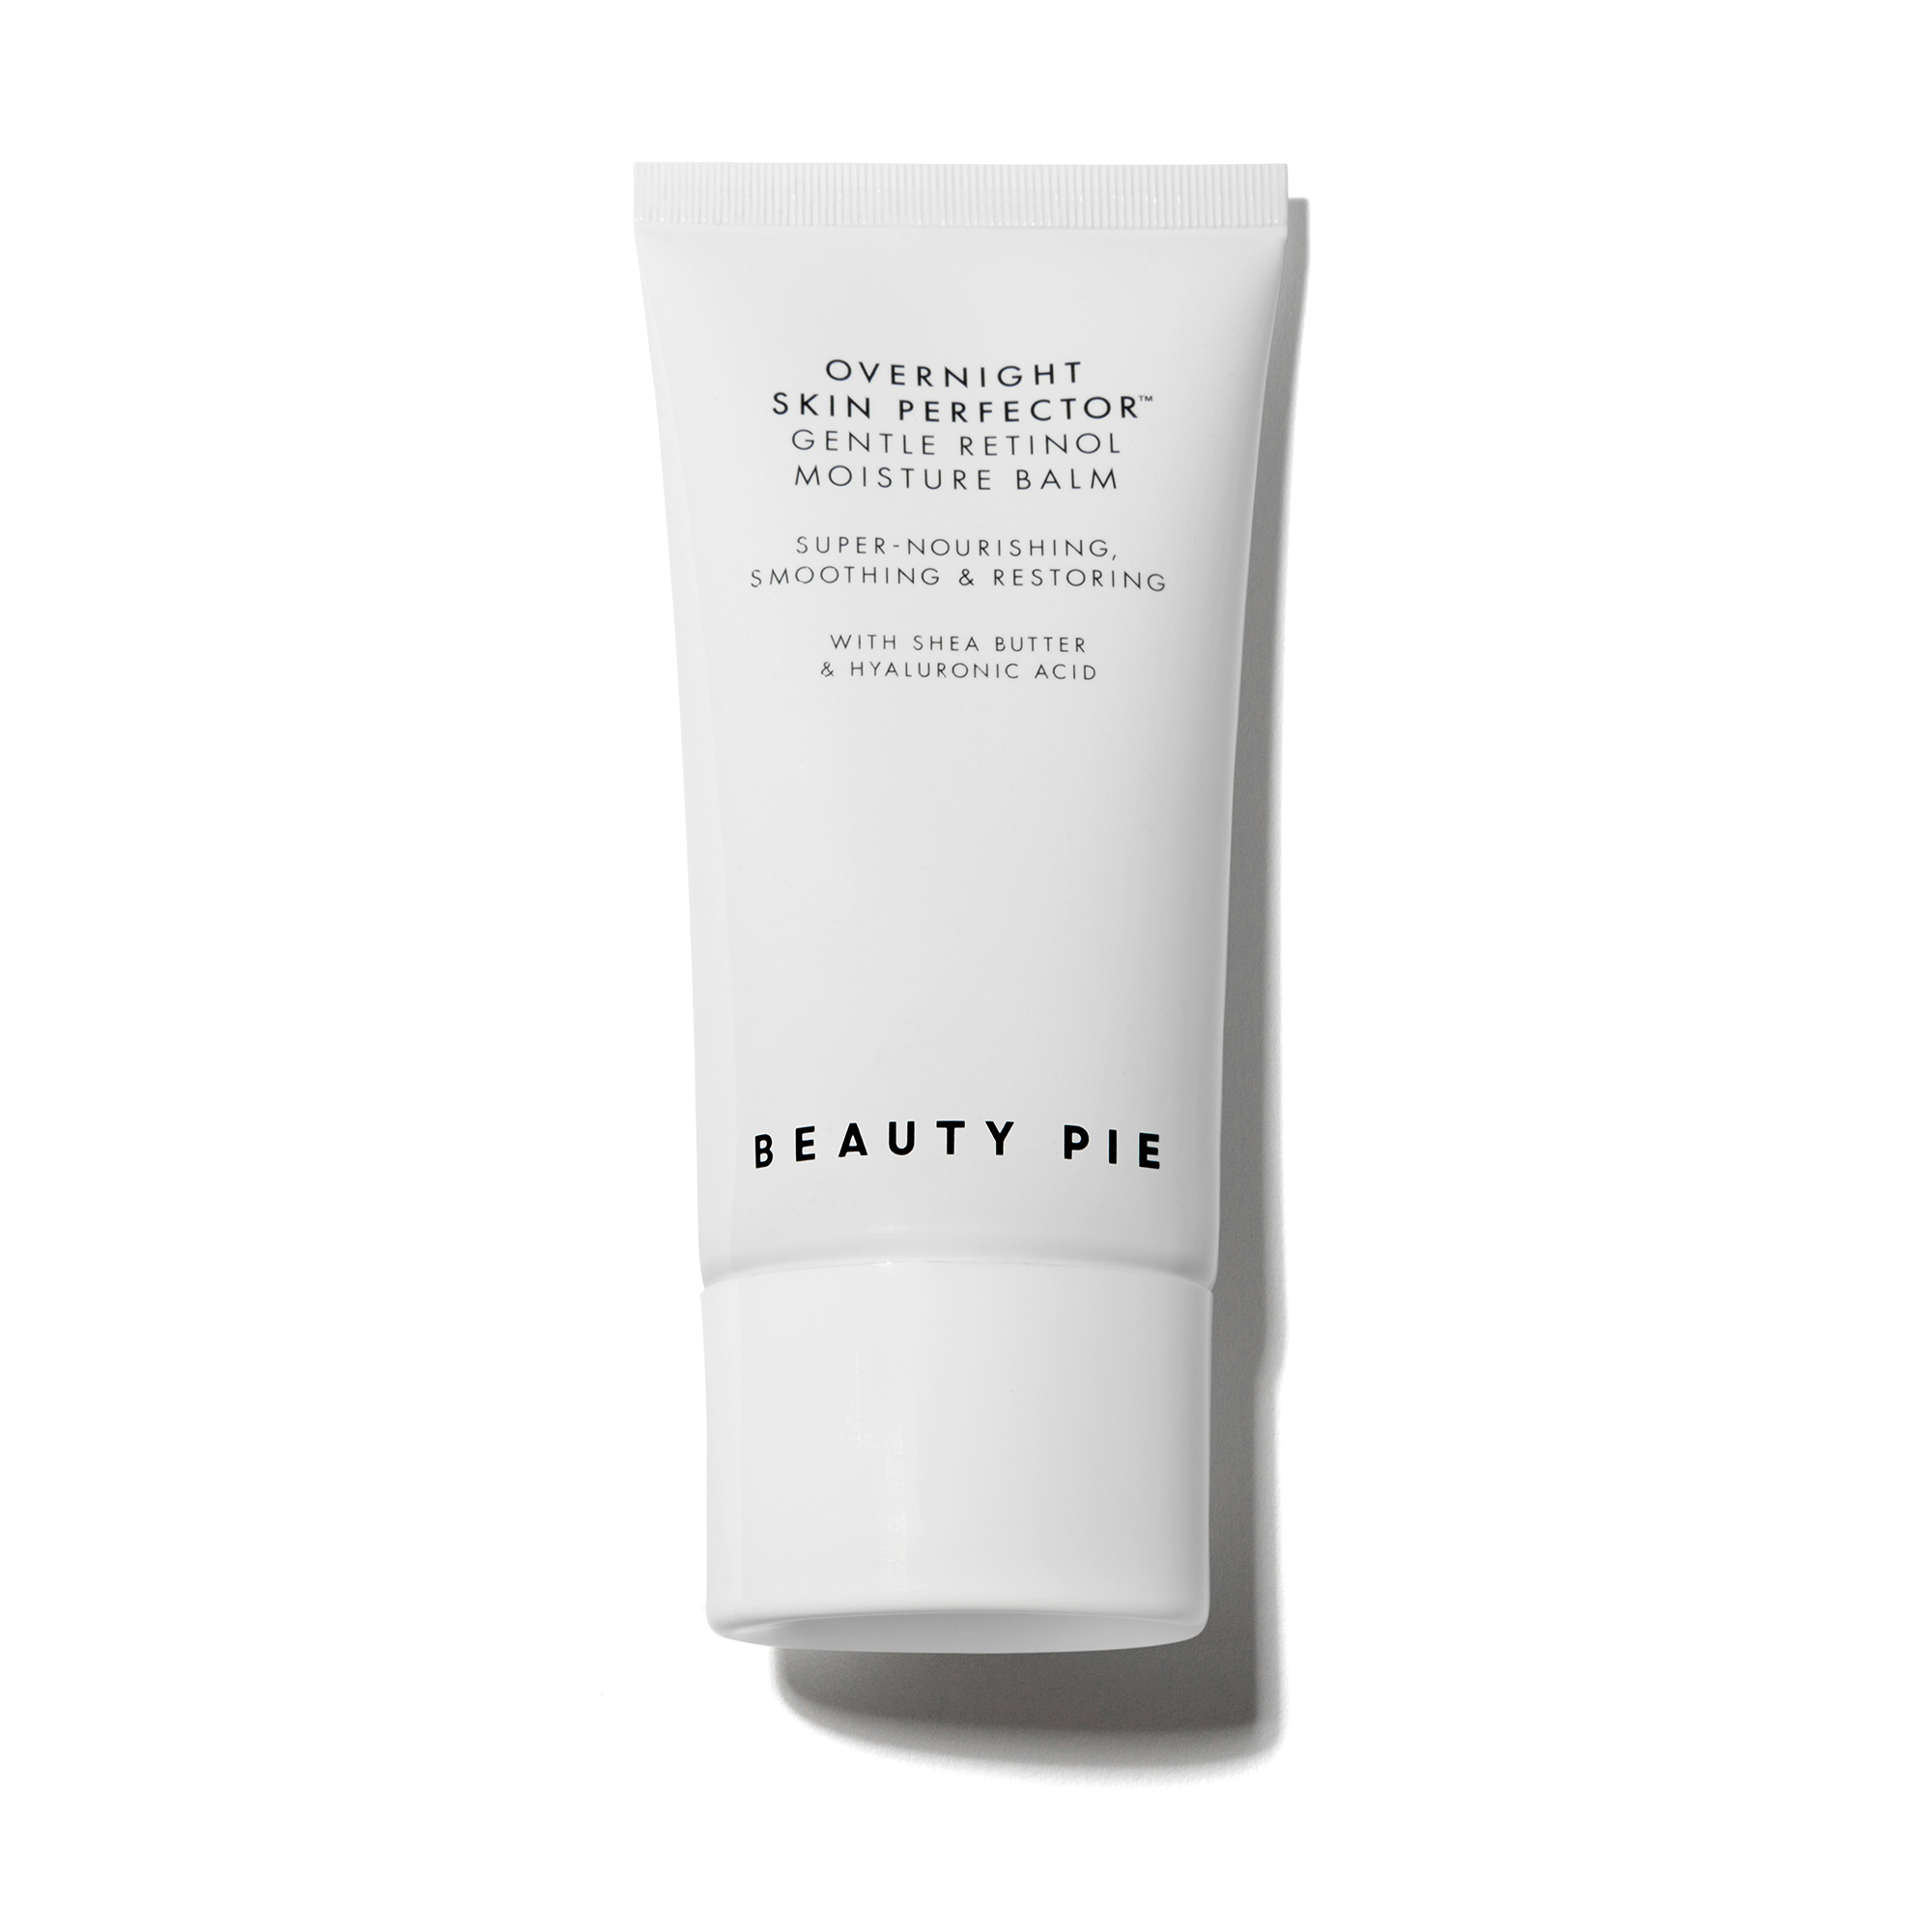 Beauty Pie Overnight Skin Perfector